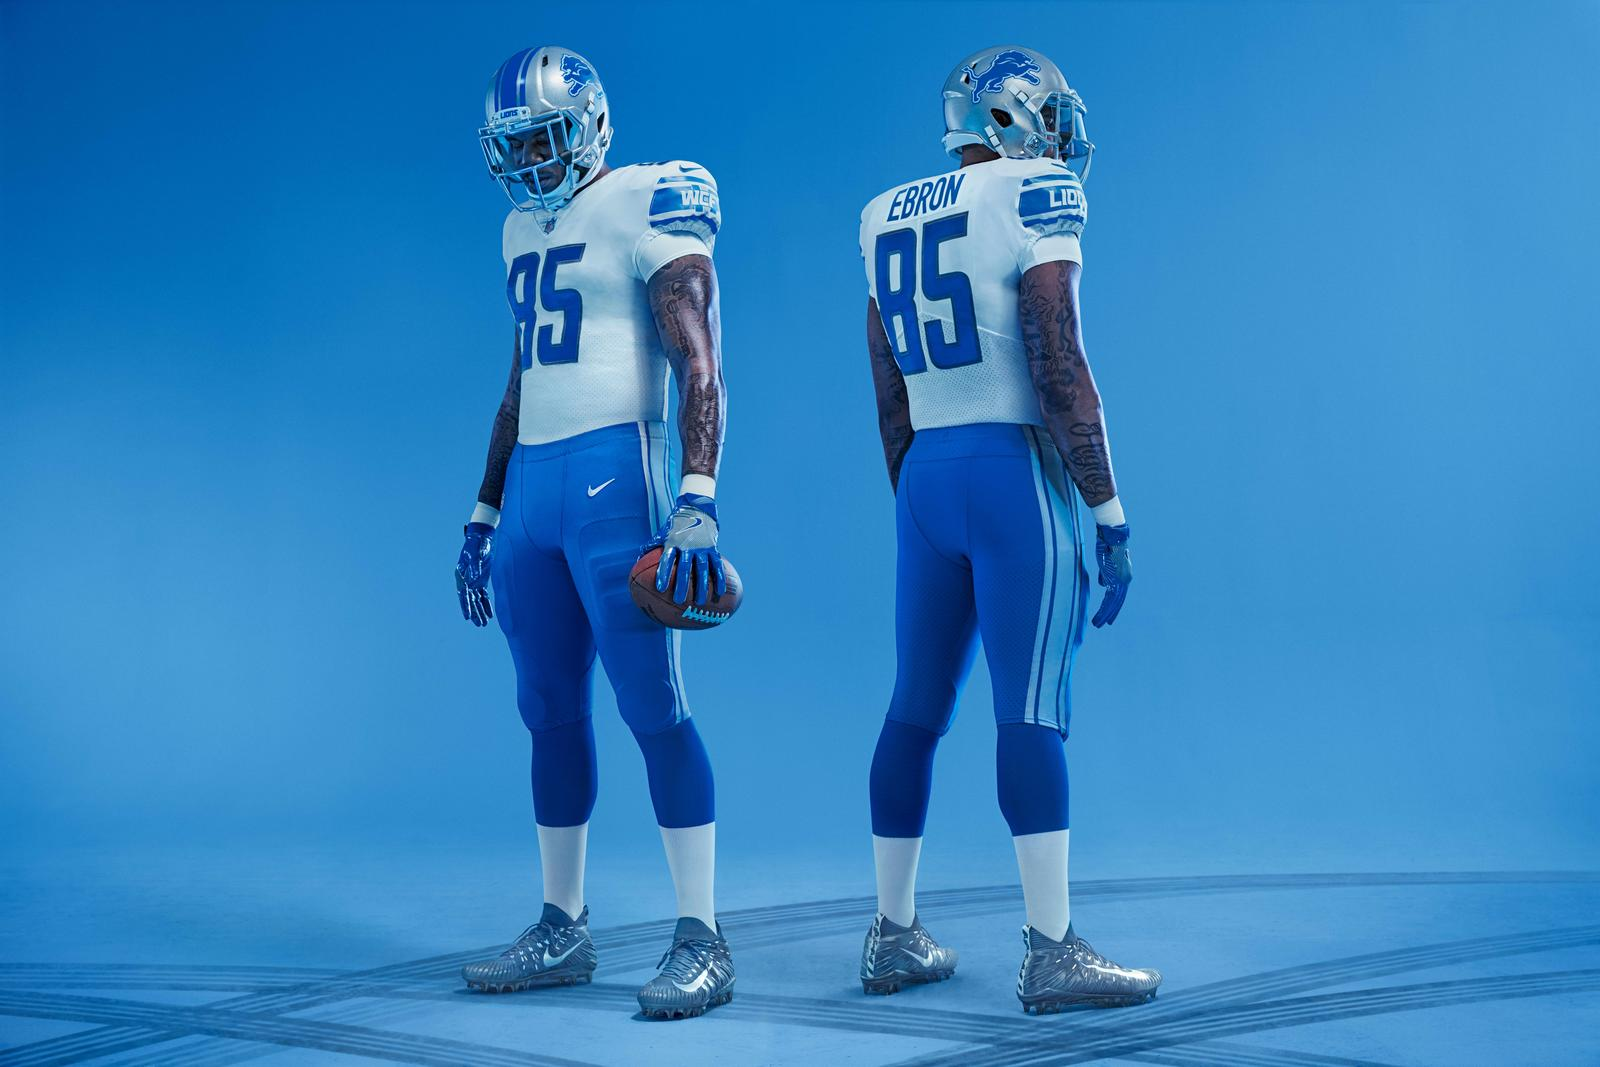 fa68788d2 ... Lions new uniforms look awfully similar to their old ones .